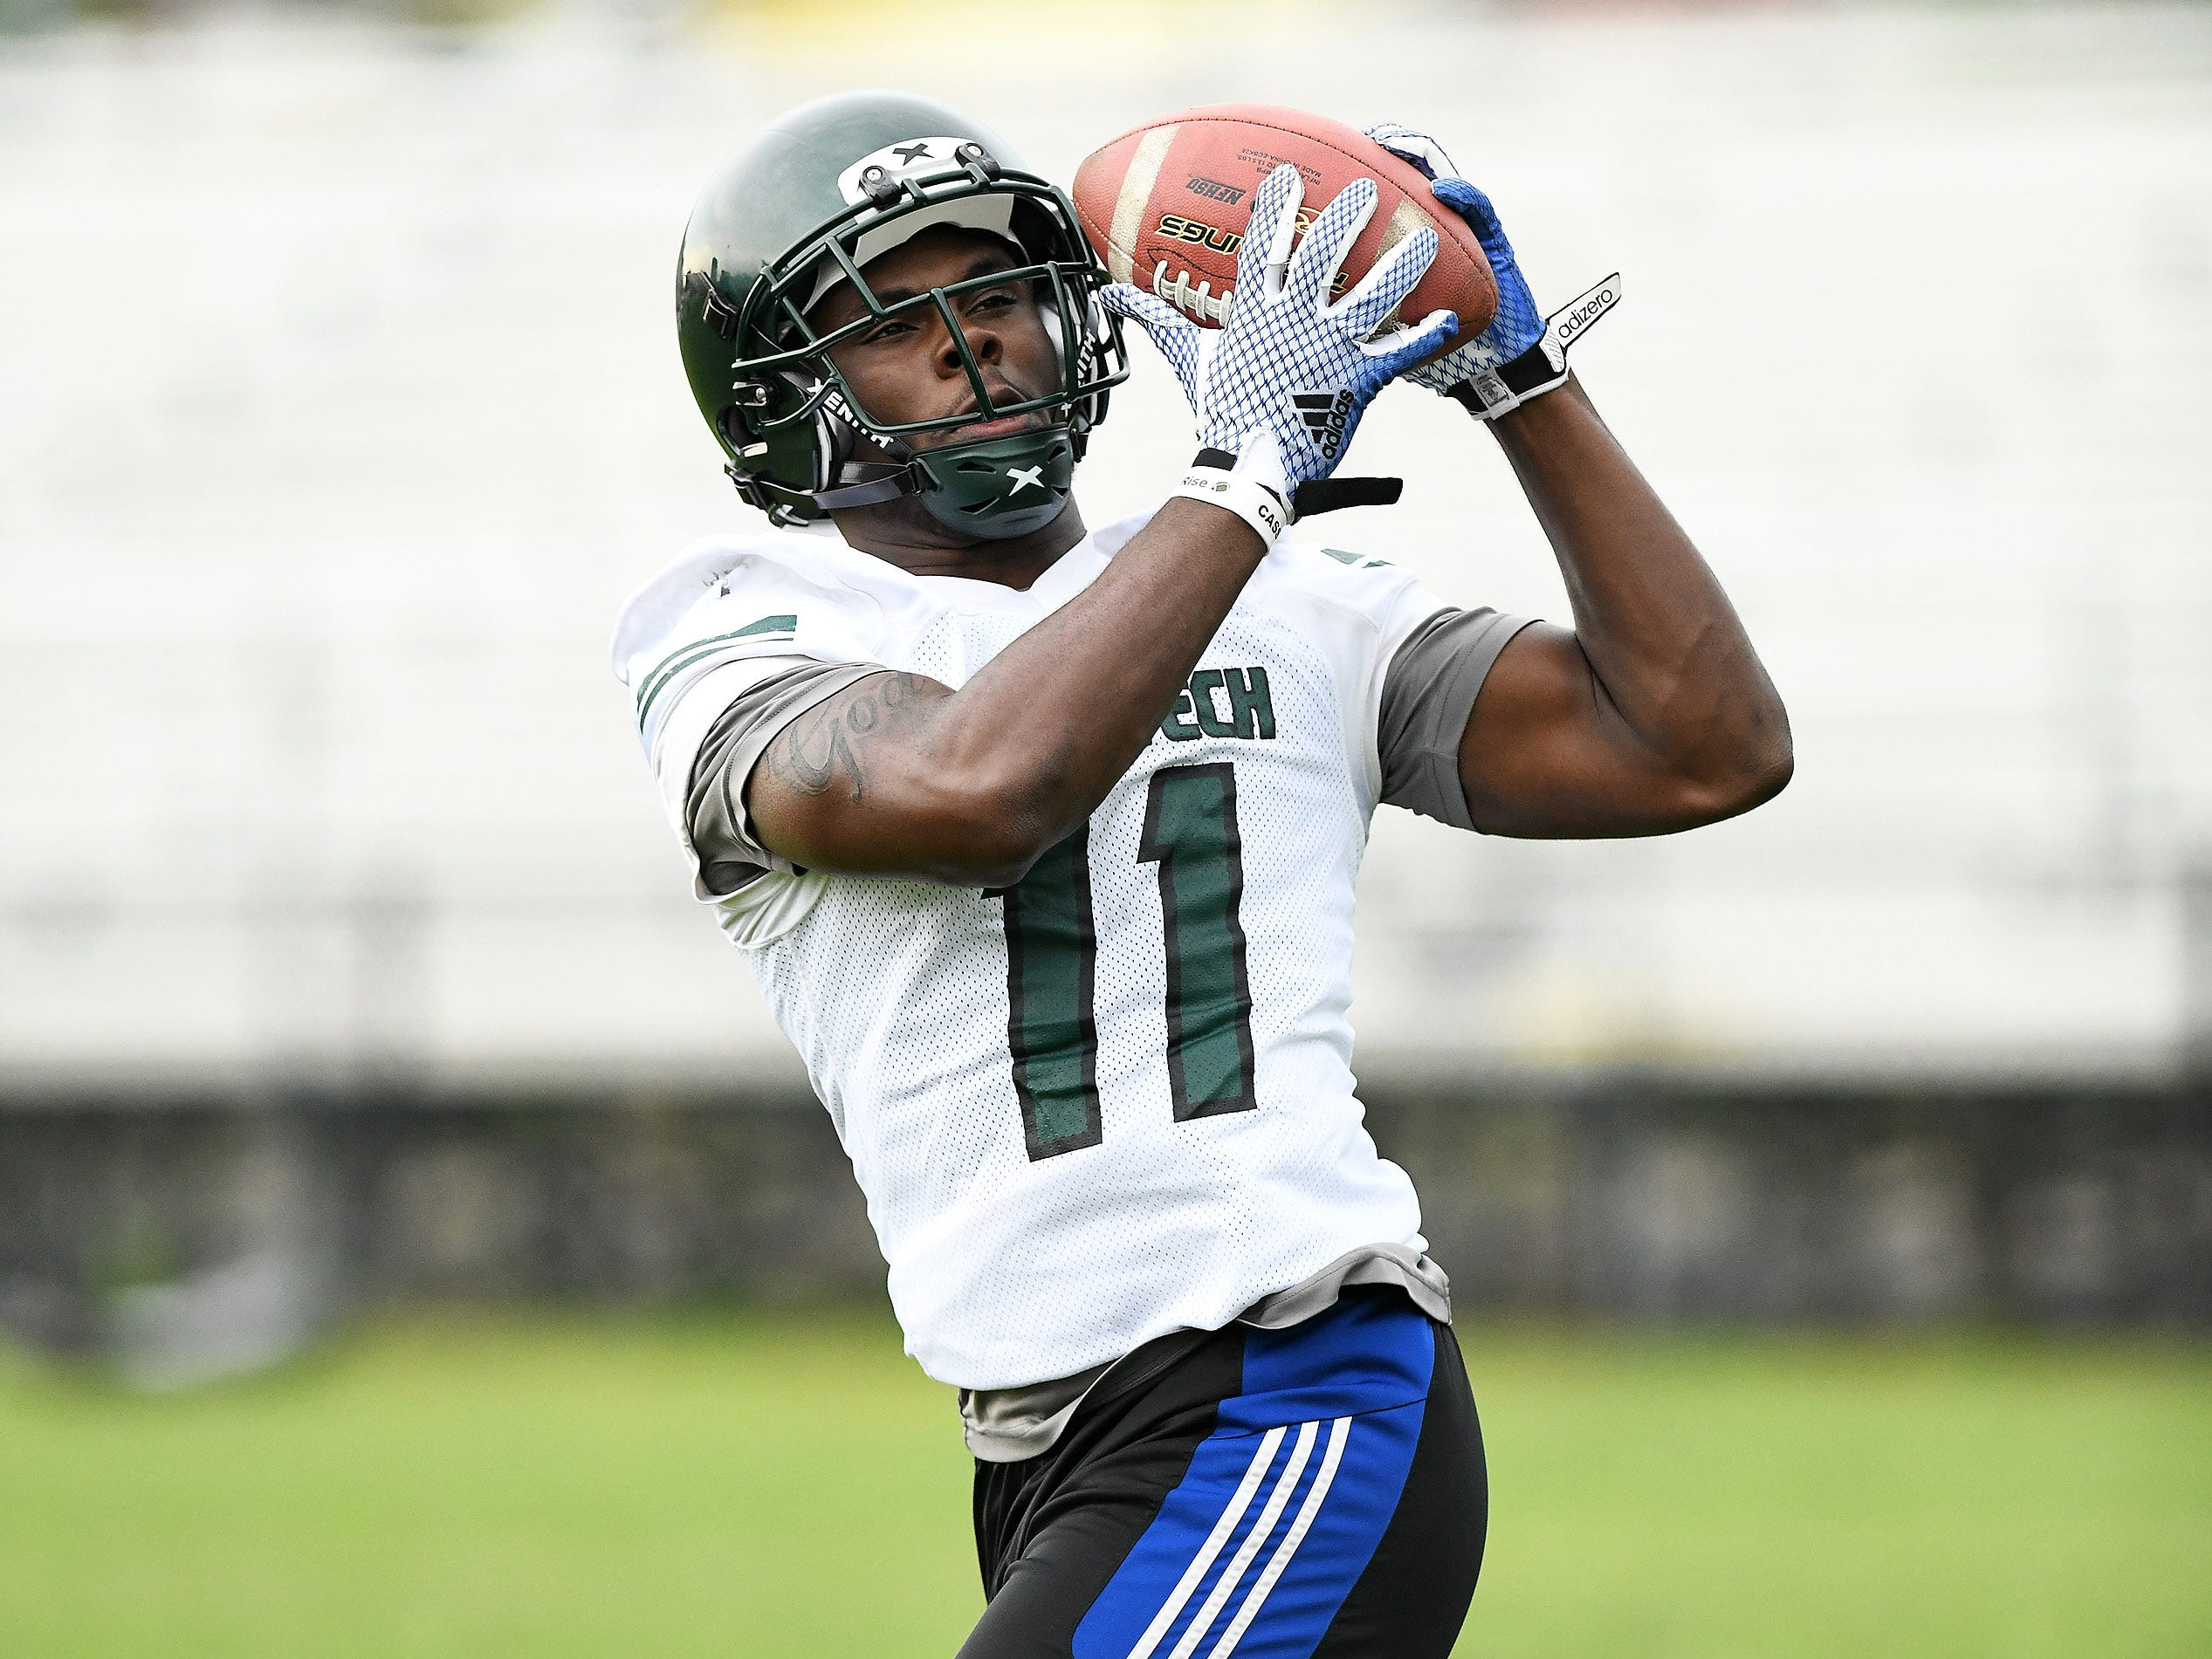 Running back Lew Nichols makes a catch during drills at football practice.